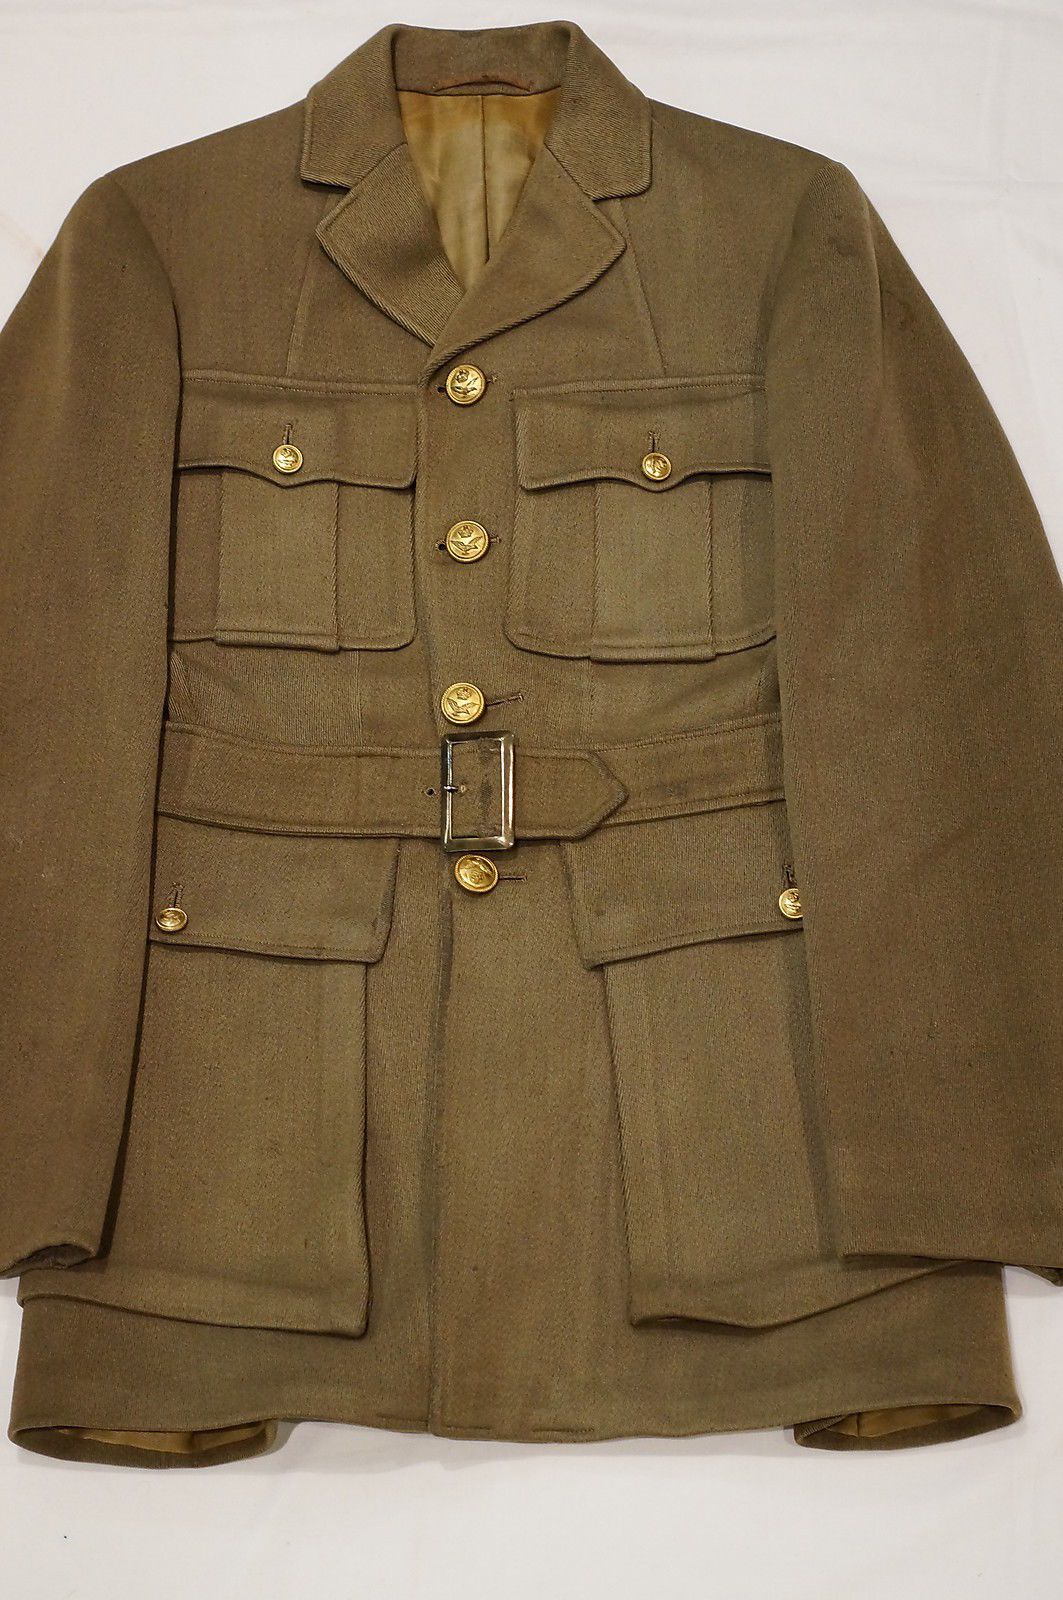 WW1 Canadian RAF Officers Candidate Service Dress Jacket